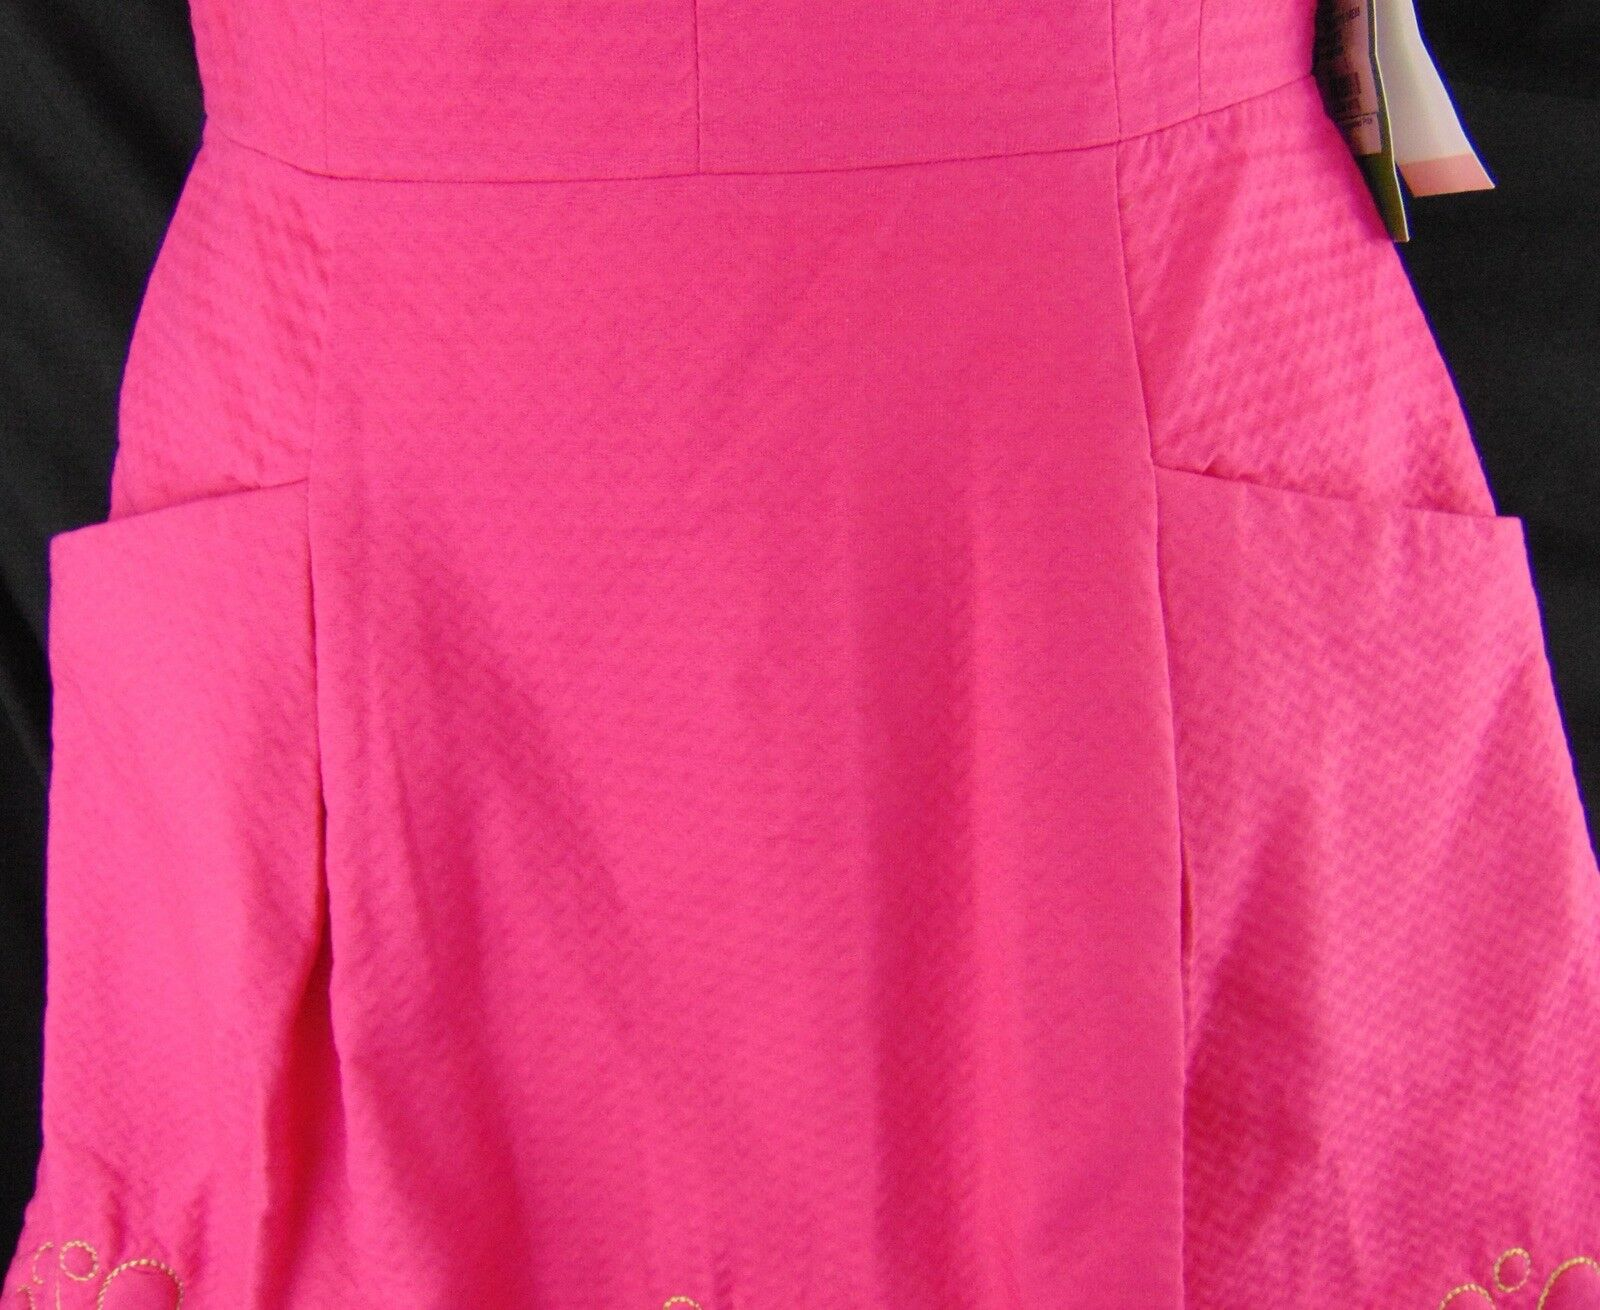 LILLY PULITZER PINK DRESS STRAPLESS, BERNADETTE gold STITCH DETAIL, DETAIL, DETAIL, SIZE 2,  248 e62d5e